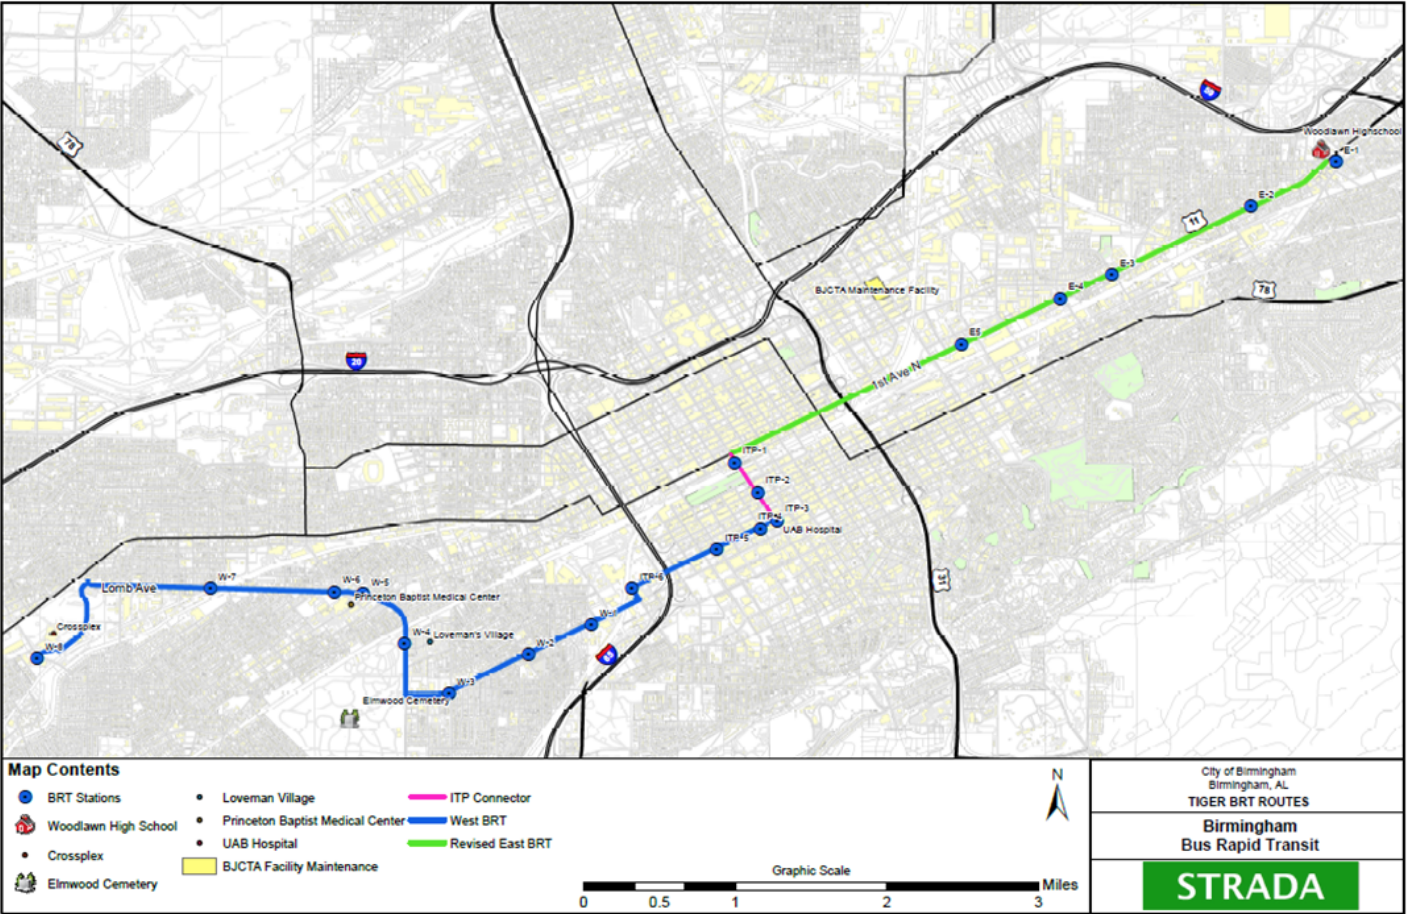 Birmingham City Council Unanimously Approves Funding for Bus